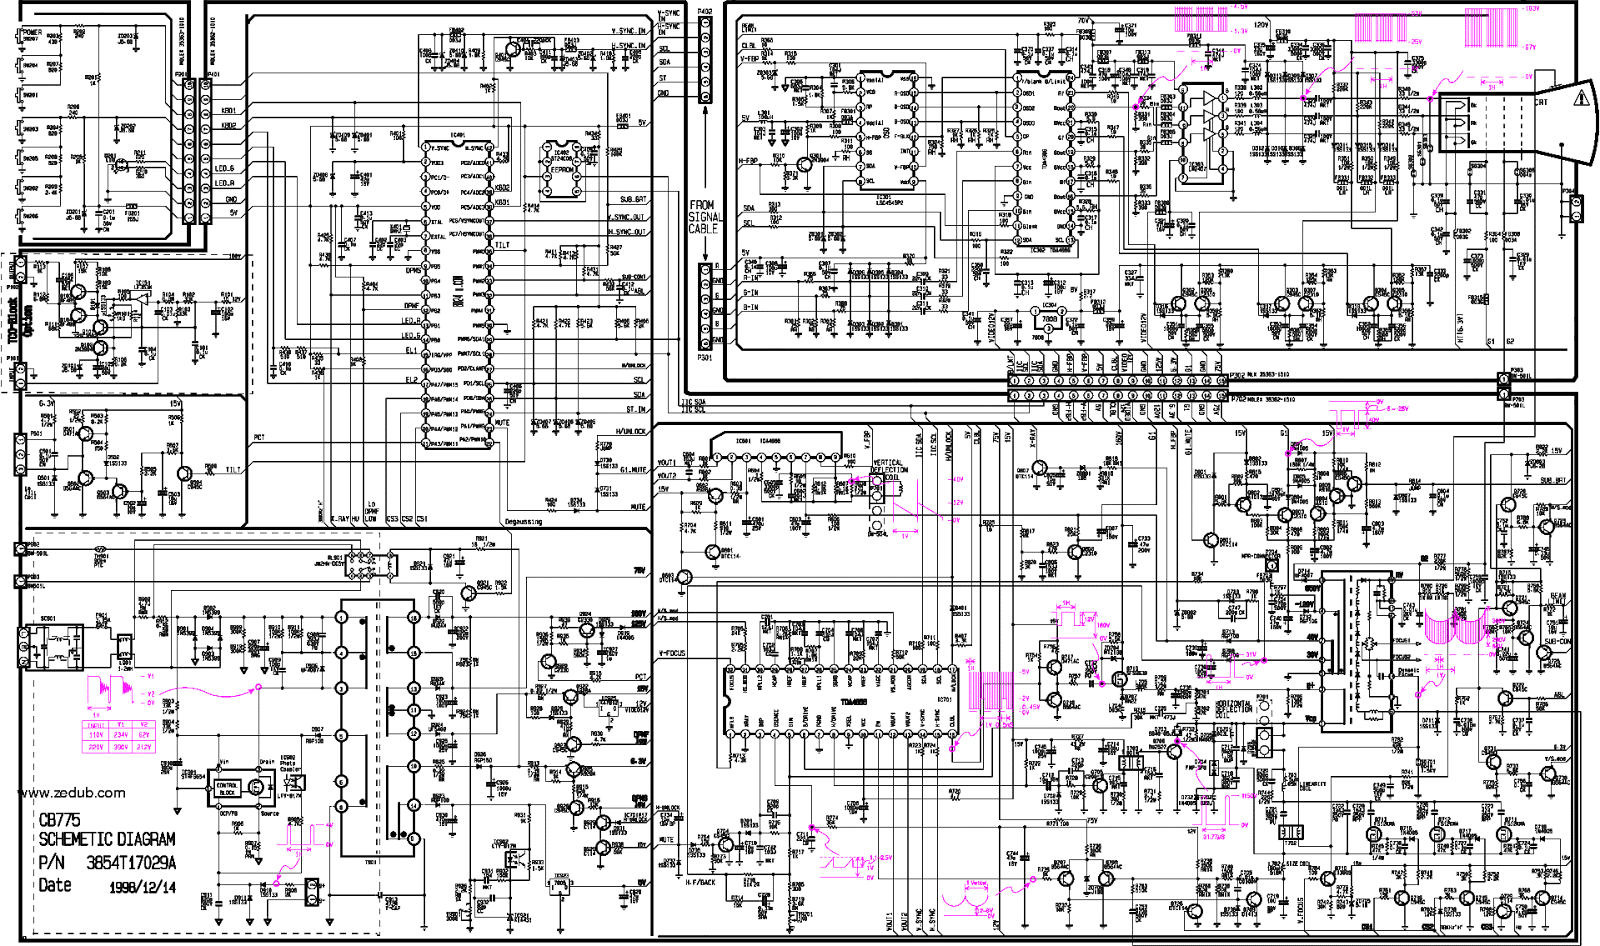 lg_cb775bn.pdf_1 Crt Tv Schematic Diagram Pdf on power supply, circuit board, sanyo crt,